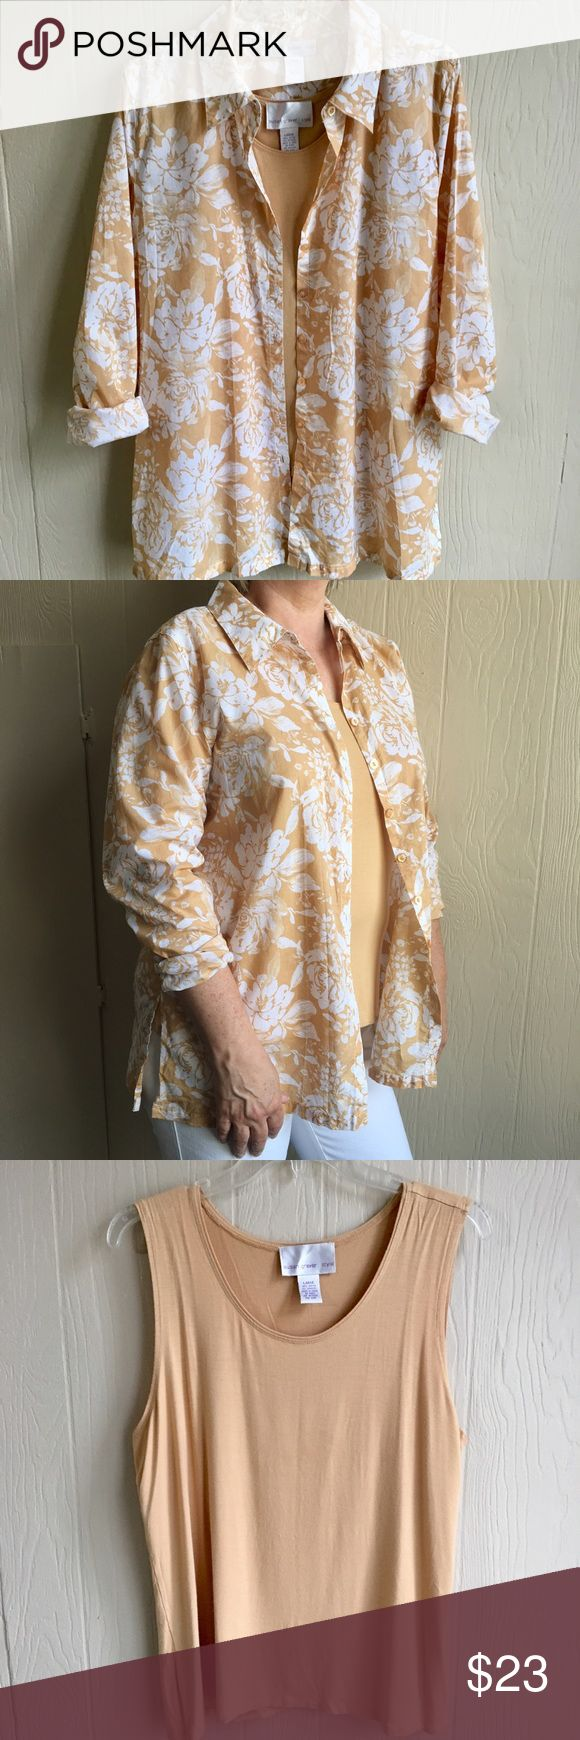 Susan Graver Floral Button-down with Cami 100% cotton (button-down). Cami is 95% Rayon/5% spandex. Cami is very soft, stretchy and slimming. A little pilling do to material. Great neutral tones to keep cool with and to match to! Good used condition. Whimsical Floral button detail. Susan Graver Tops Button Down Shirts